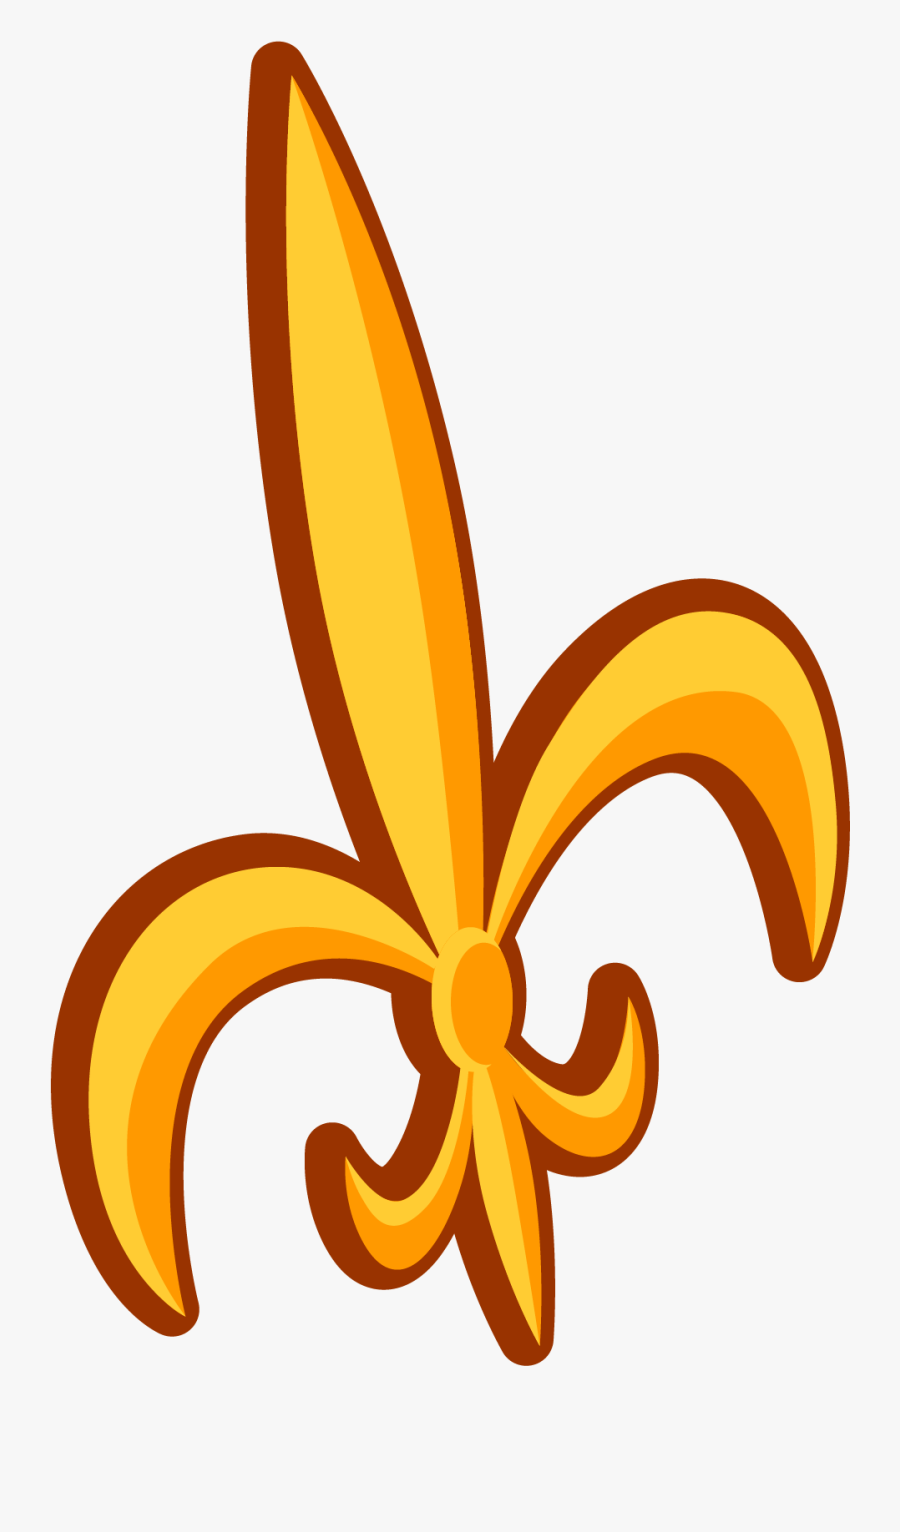 Fleur De Lis - Illustration, Transparent Clipart